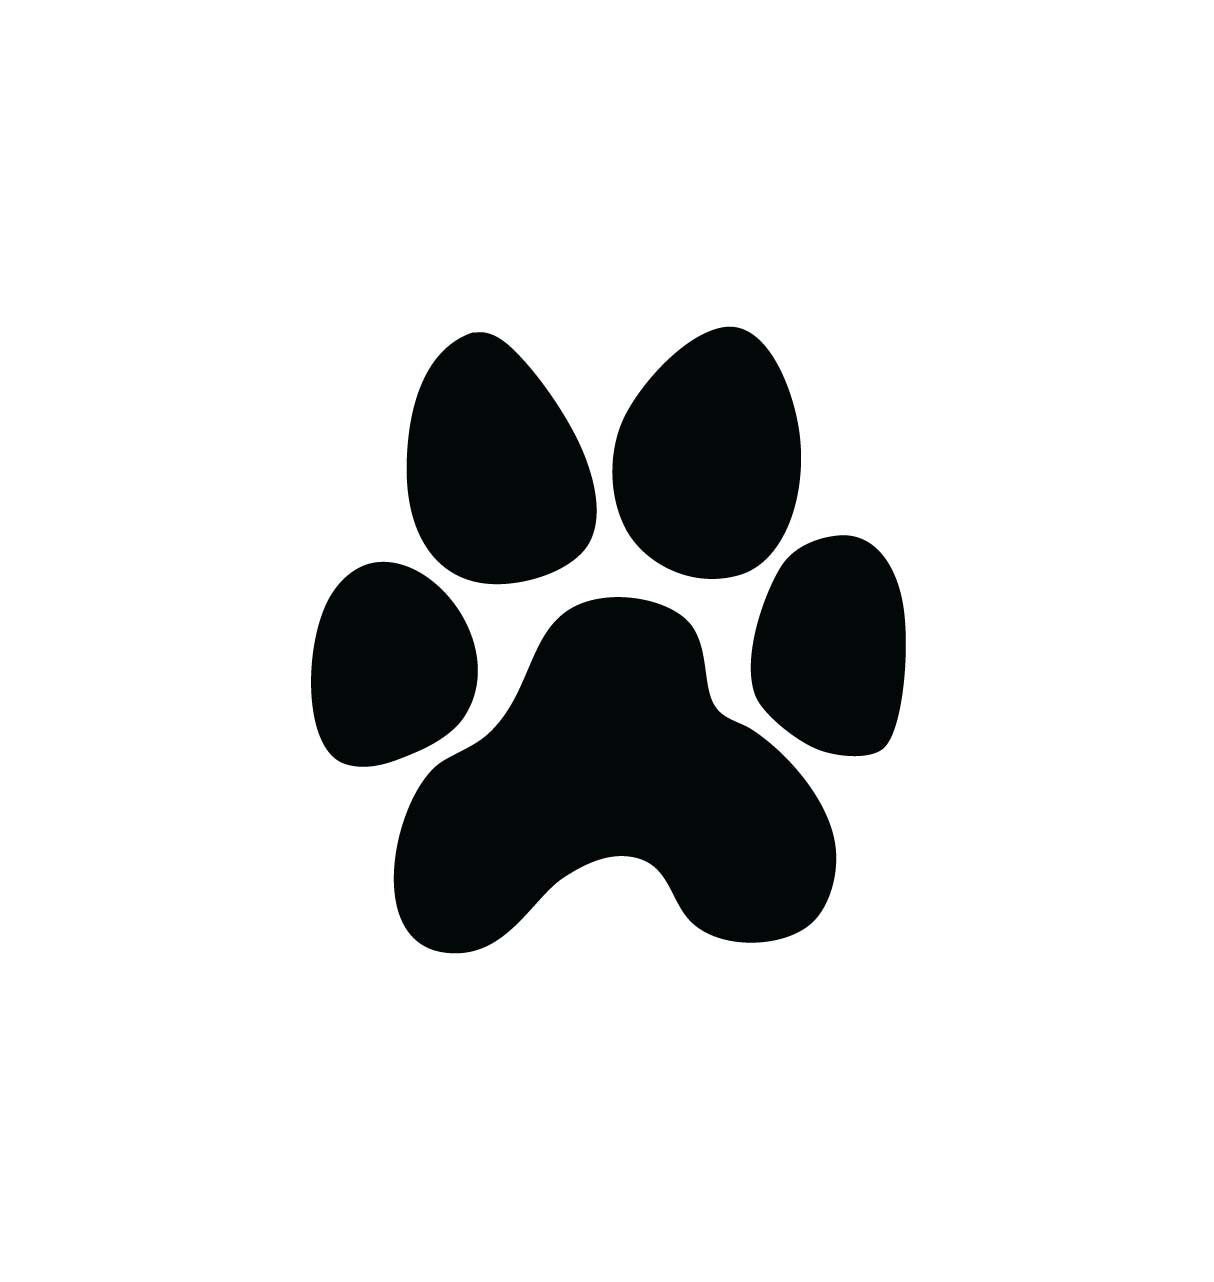 64 Images Of Cat Paw Print Clip Art You -64 Images Of Cat Paw Print Clip Art You Can Use These Free Cliparts-0